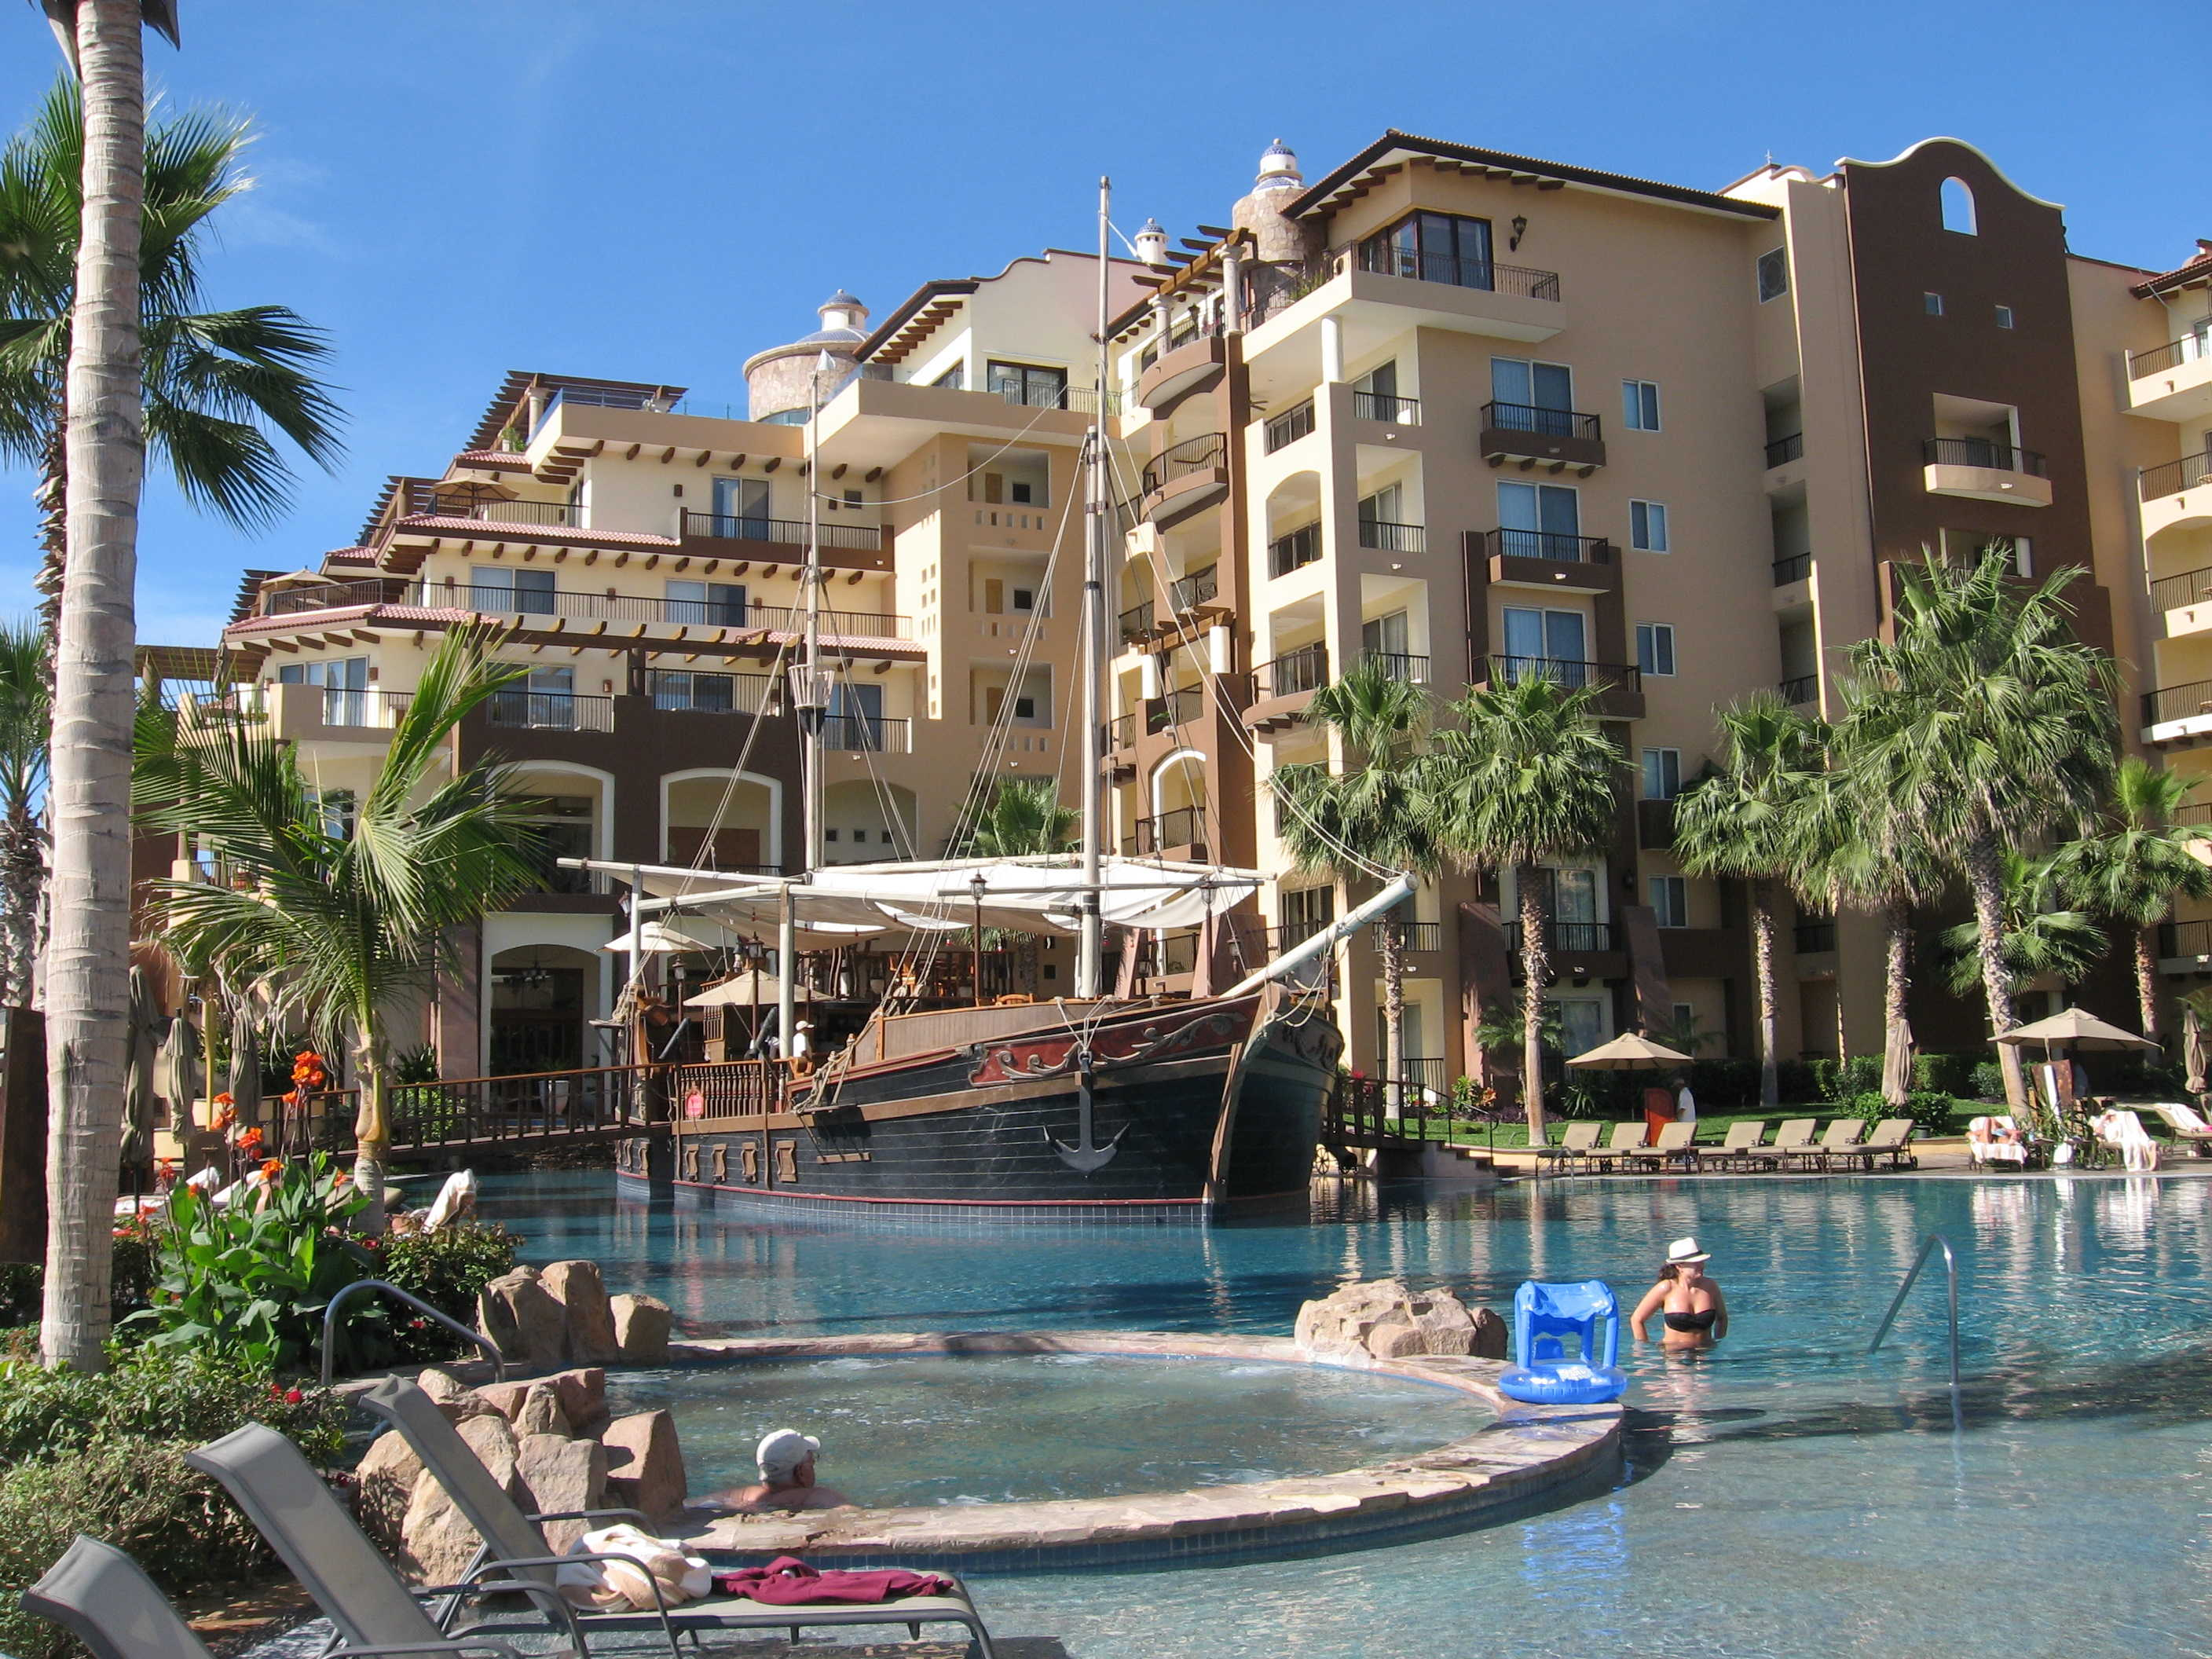 Cabo San Lucas Mexico S Paradise Gallagher S Travels